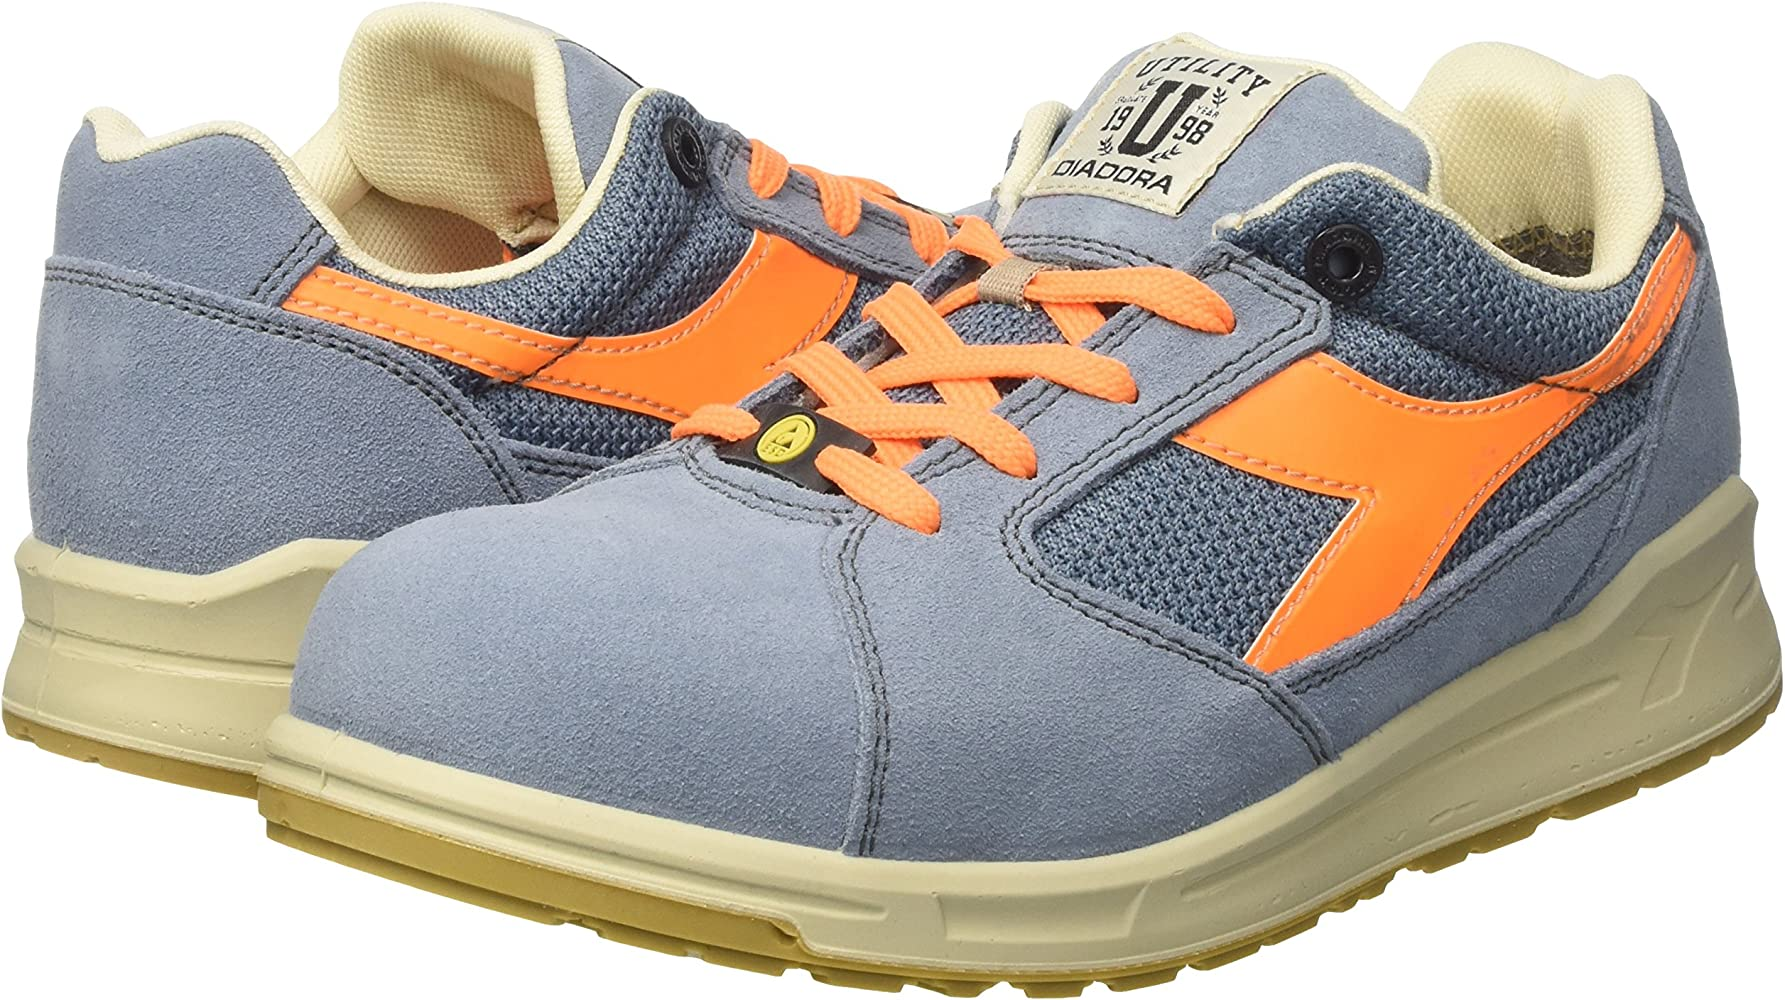 Difettoso Canguro Distruggere  Diadora D-jump Low S1p Esd, Unisex Adults' Work shoes, Blue (Blu Denim  Sbiadito/arancio Flame), 6 UK (39 EU): Amazon.co.uk: Welcome